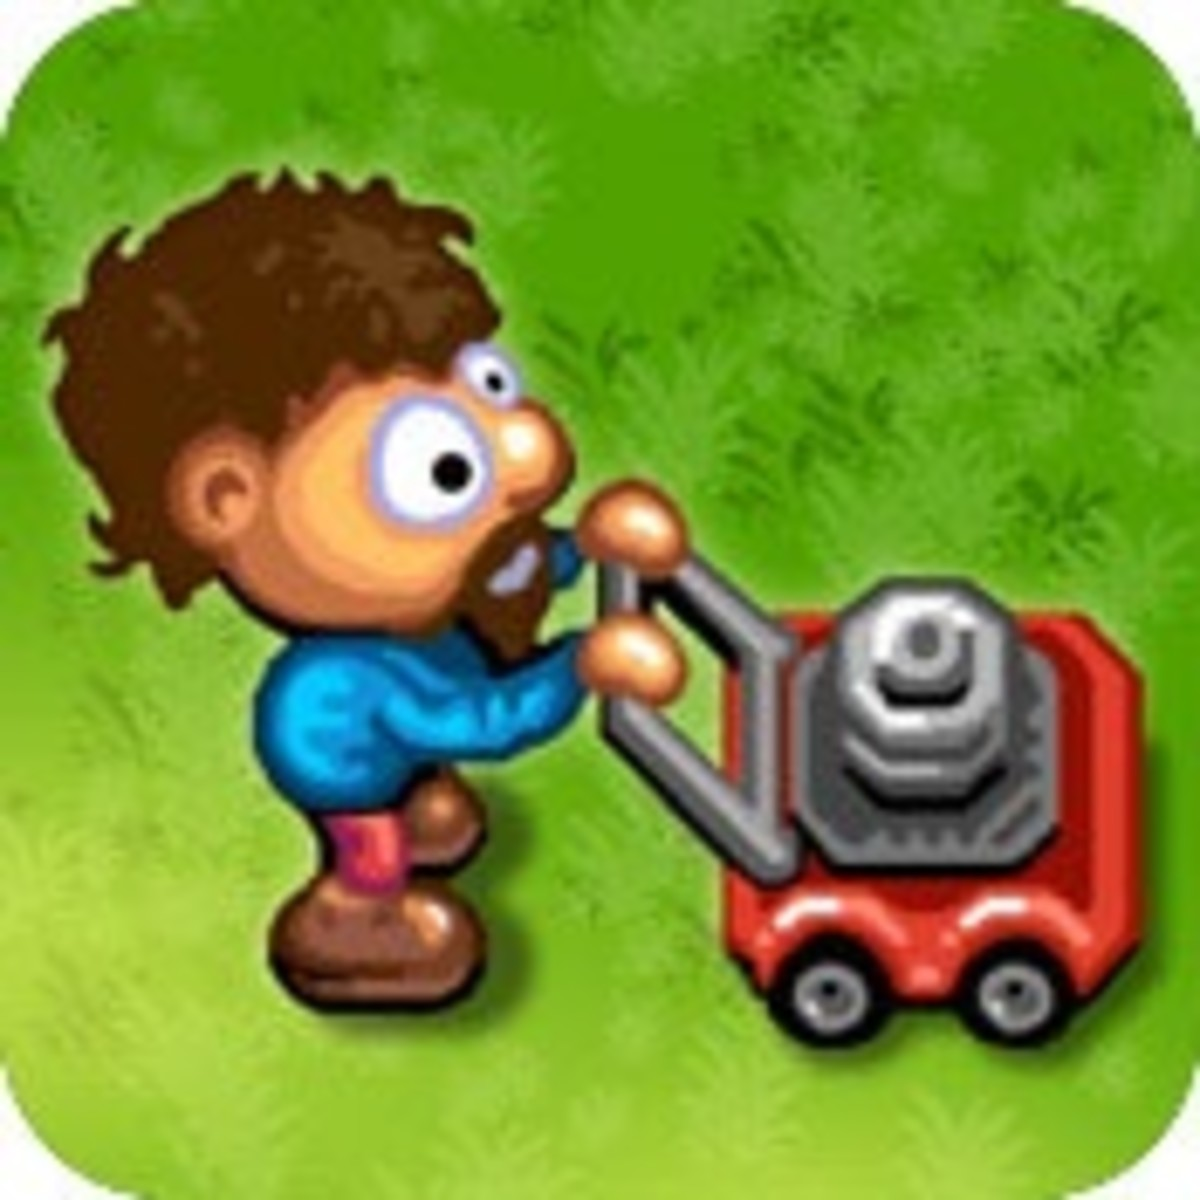 Sunday Lawn Game App For iPhone - Tips, Hints, Cheats, Level Walkthroughs